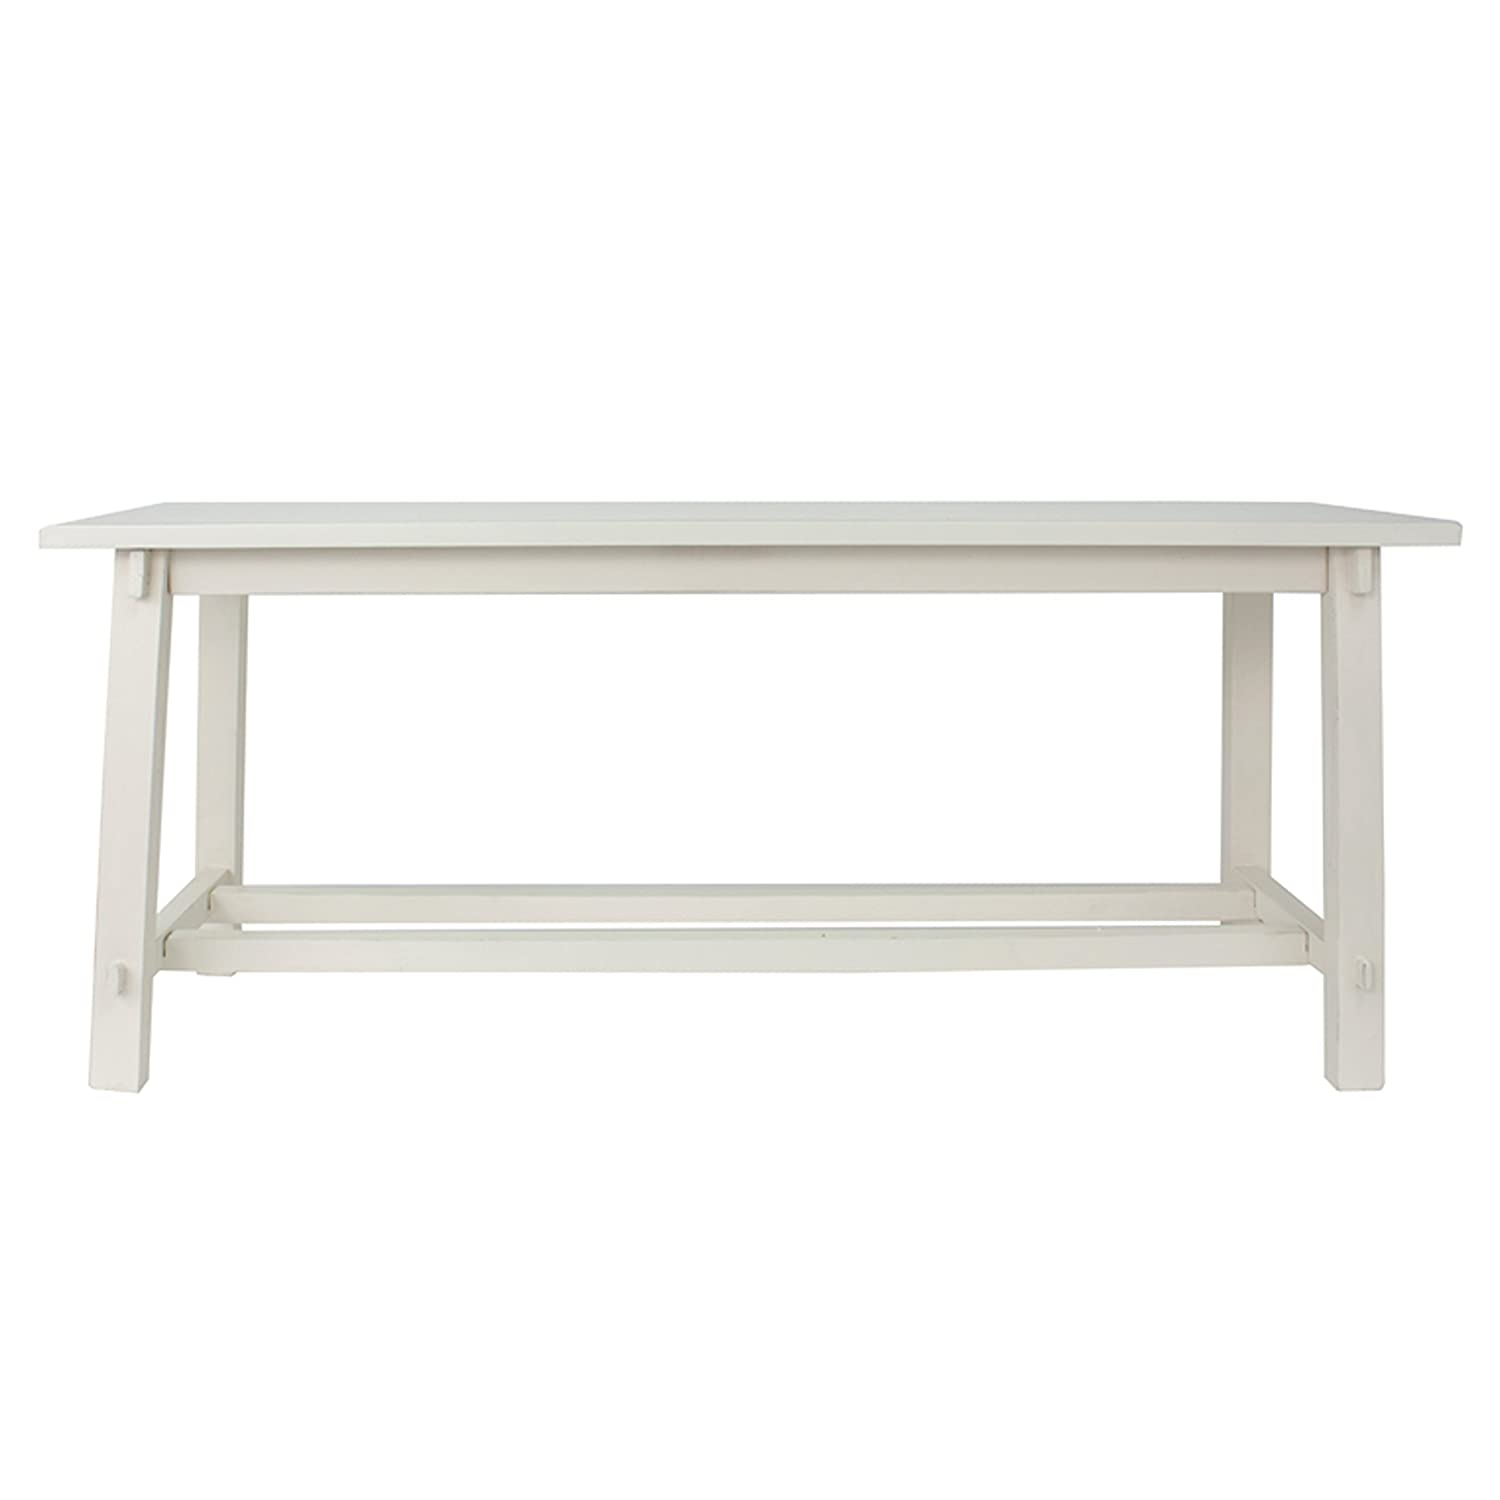 Décor Therapy Bench, Antique white